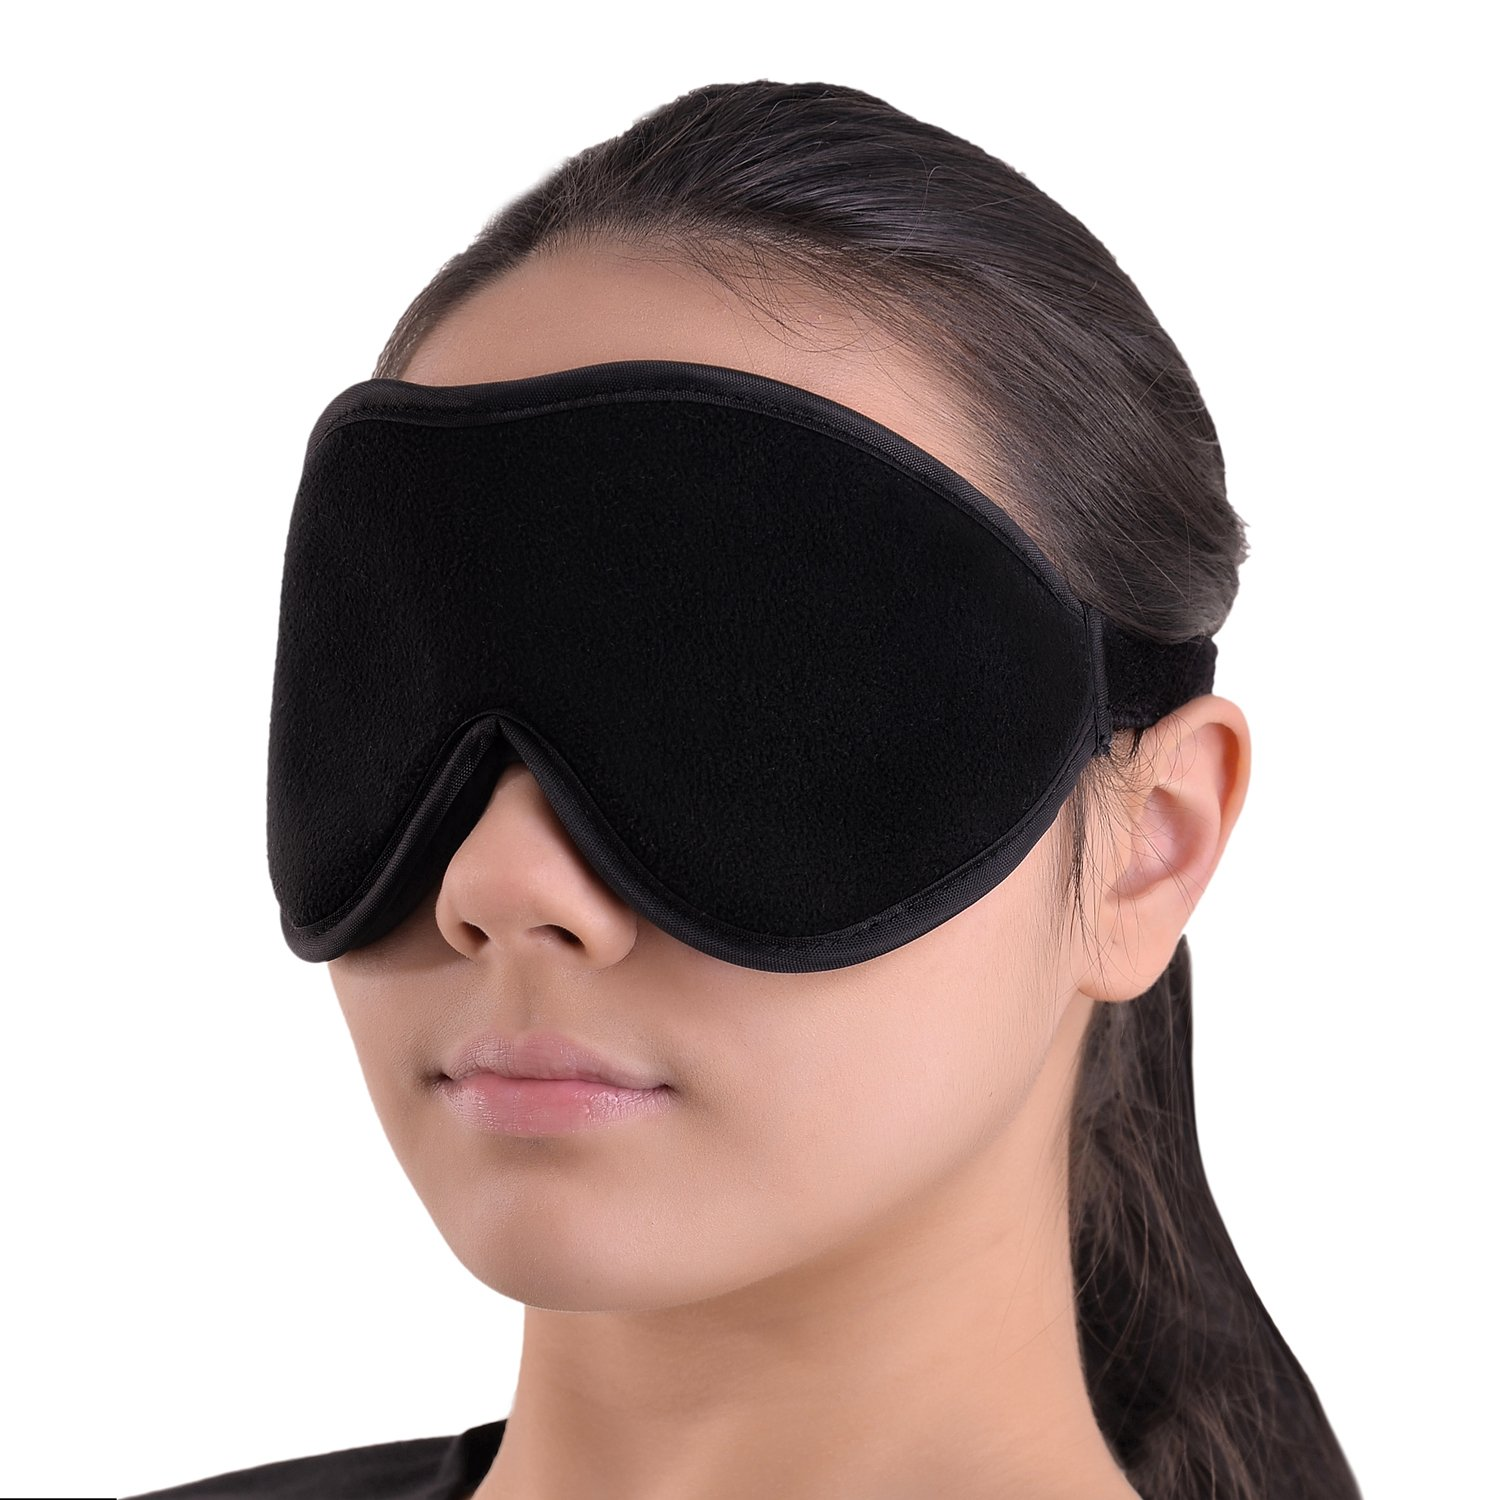 Amazon Com Sleep Mask Blindfold Eye Shades 100 Light Blocking Blackout Sleeping Mask Is Comfortable For Relaxation Migraines Insomnia Travel Mask Is